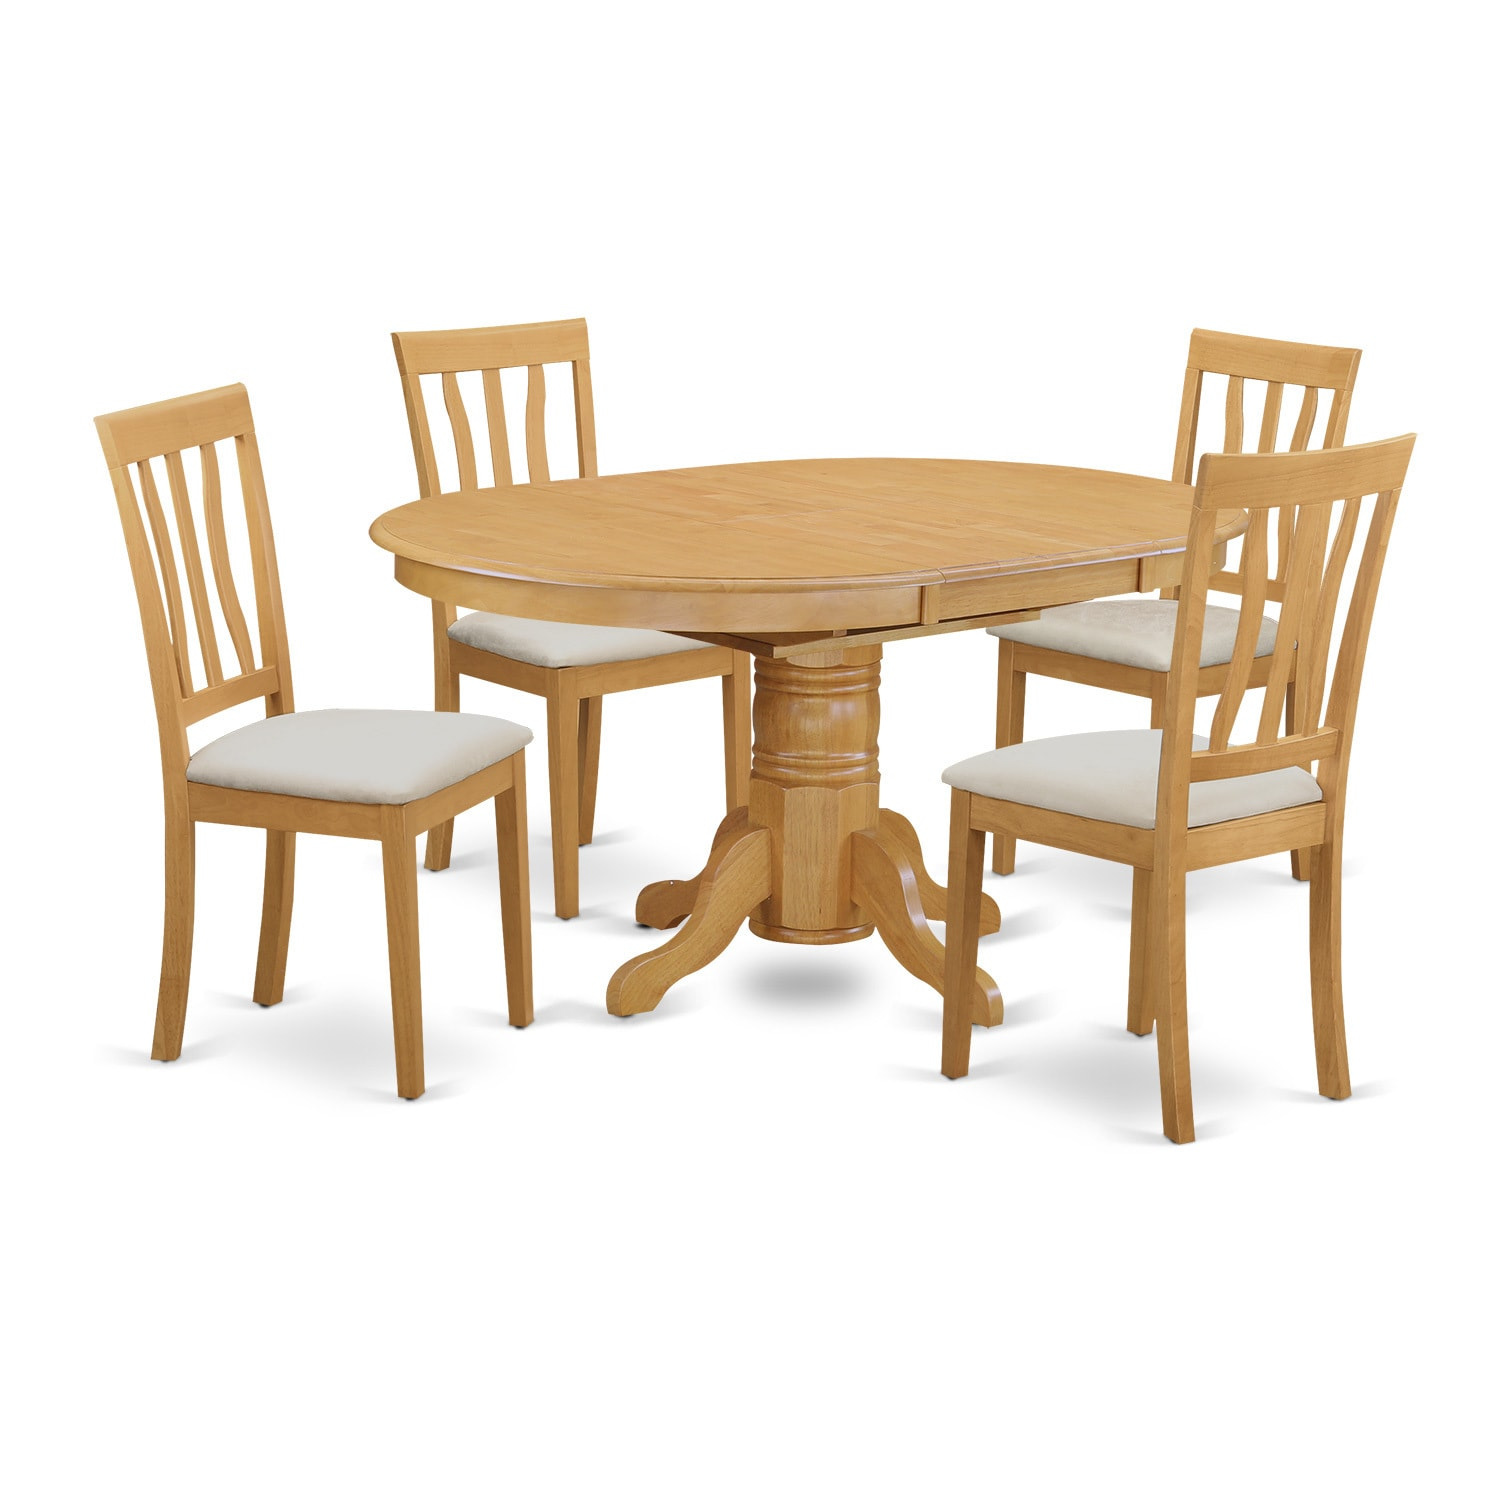 AVAT5-OAK-C 5 PC Dining room set - Kitchen dinette table and 4 kitchen chairs